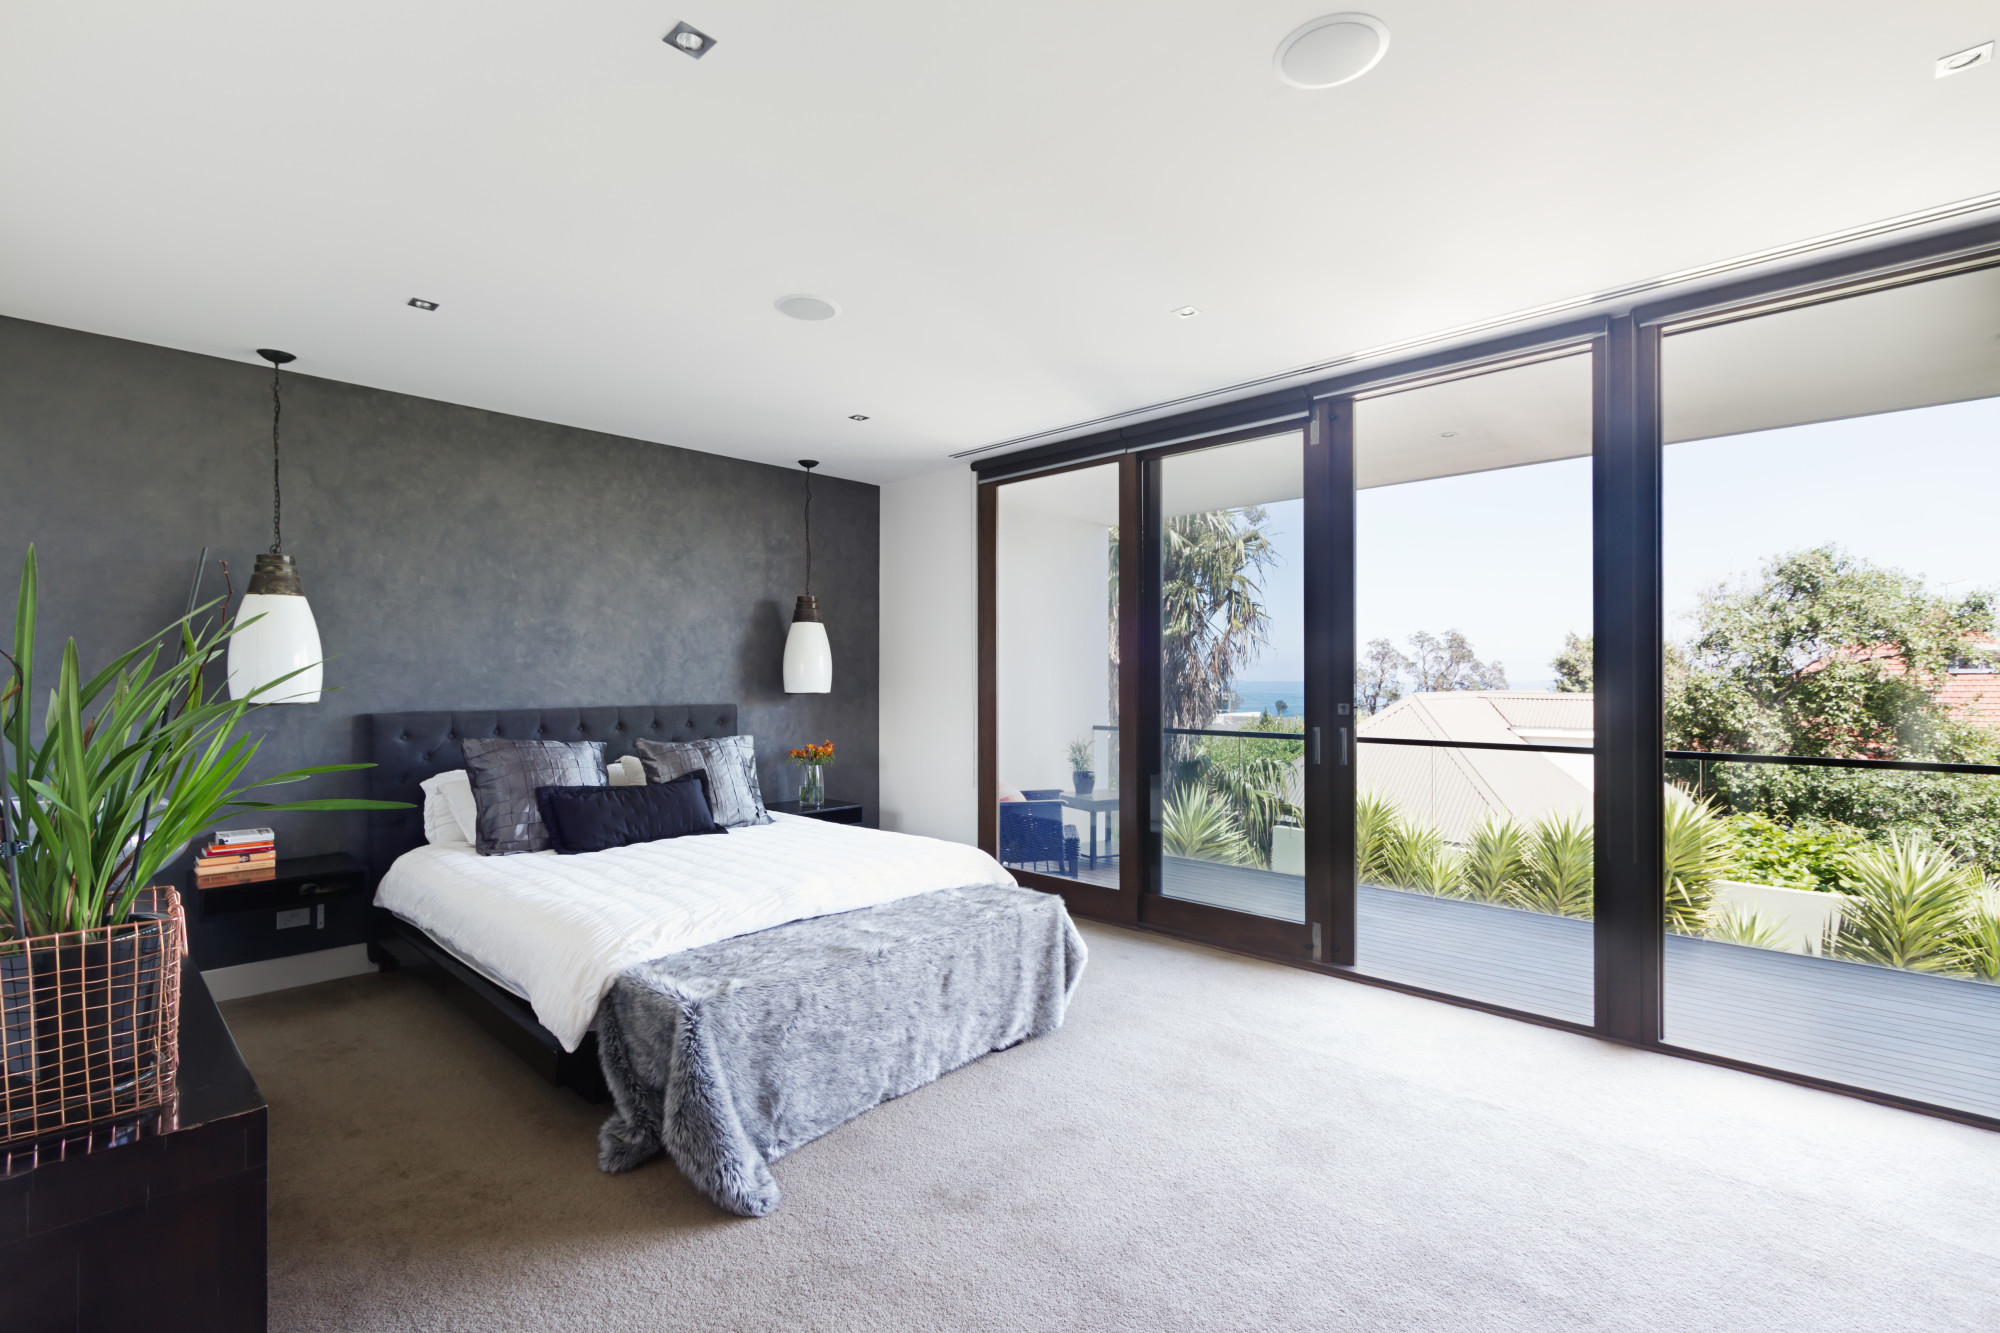 9 Types of Glass Doors to Install Throughout Your Home